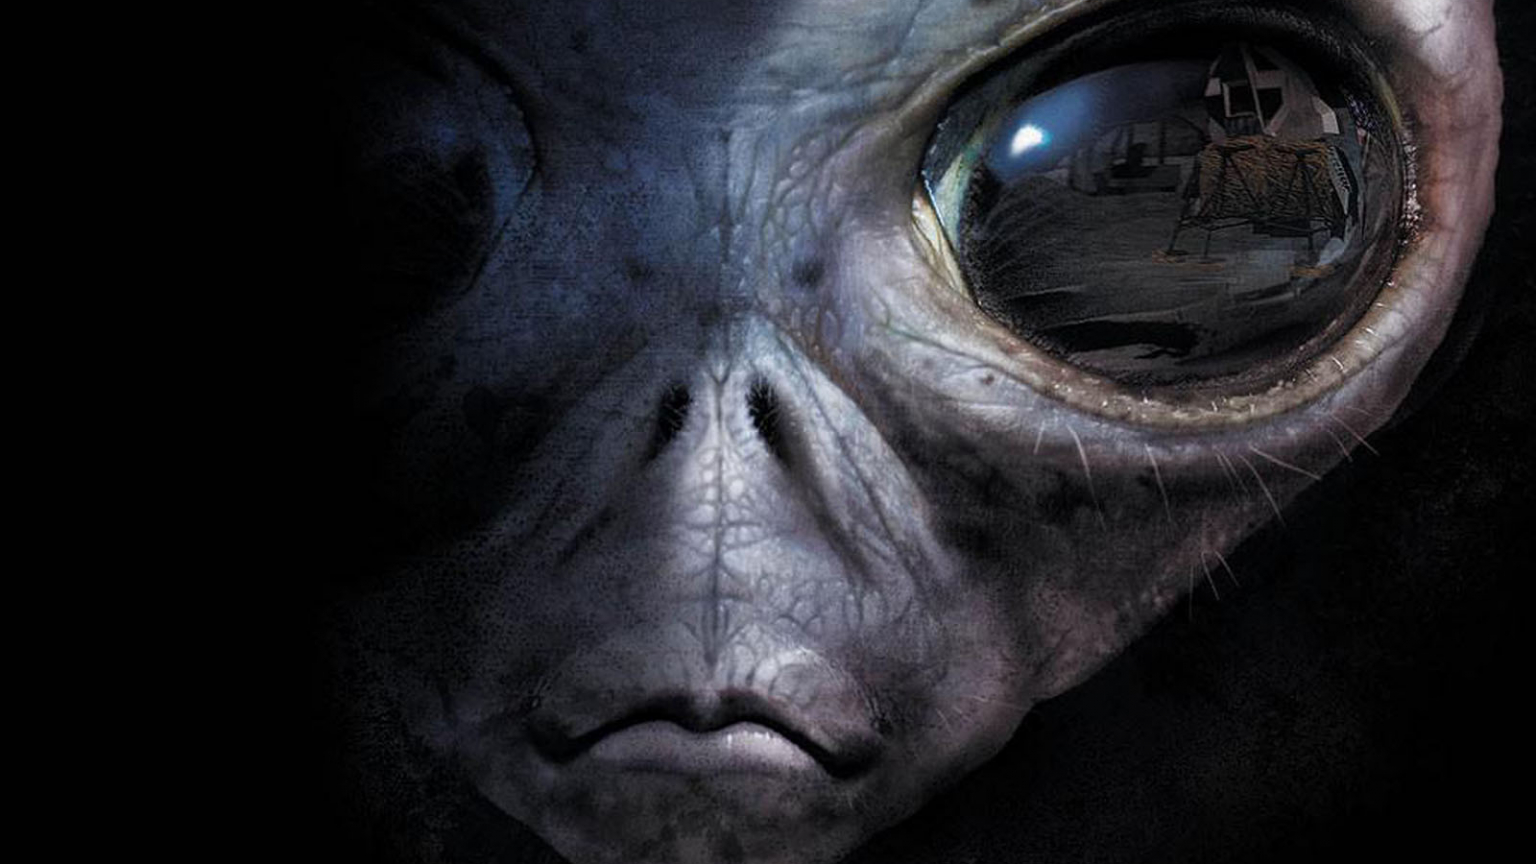 download wallpapers Alien Eyes Wallpapers [1600x1200] for 1536x864